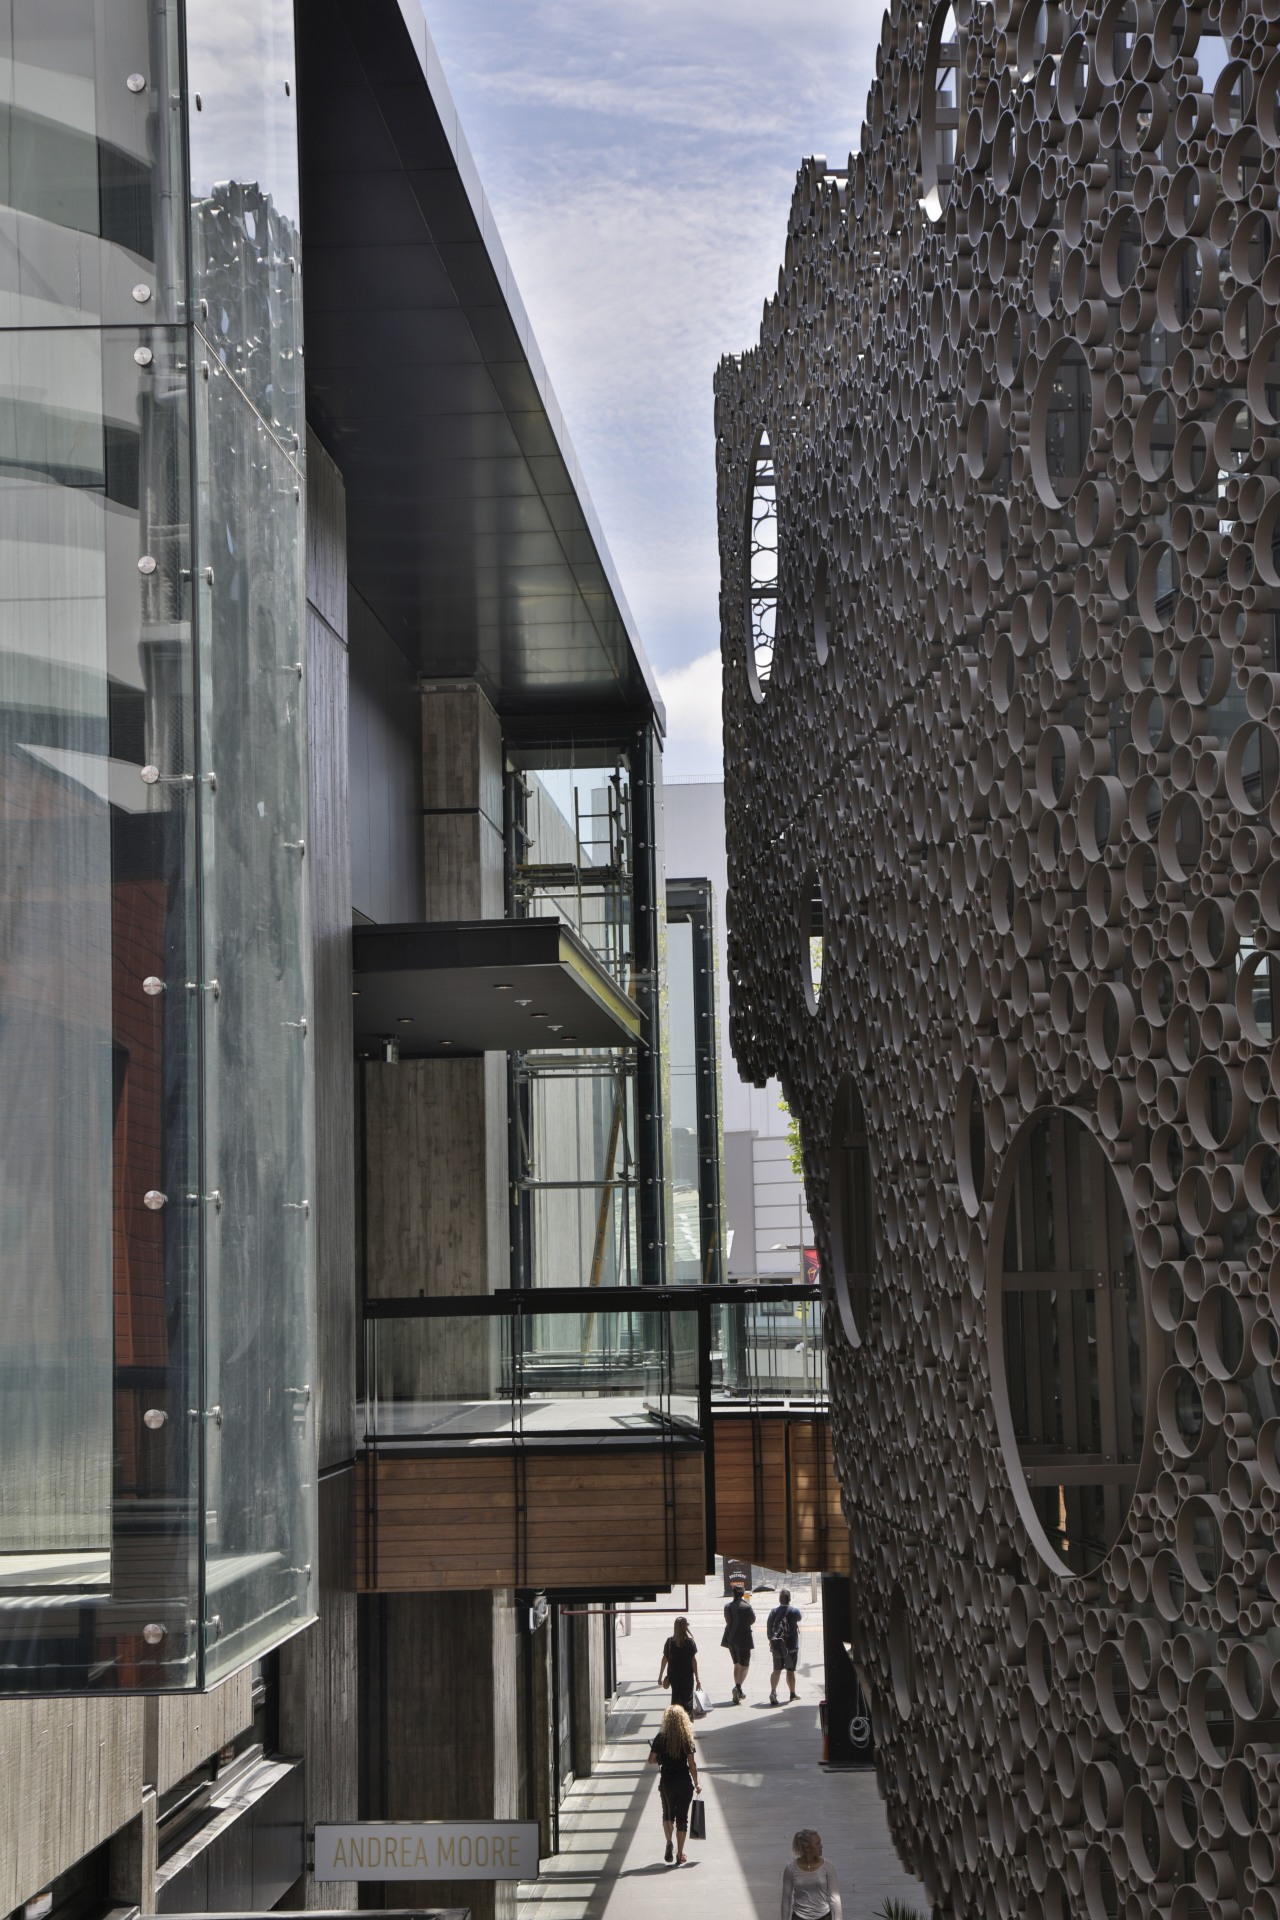 First floor shops and walkways offer glimpses into architecture, building, black, gray